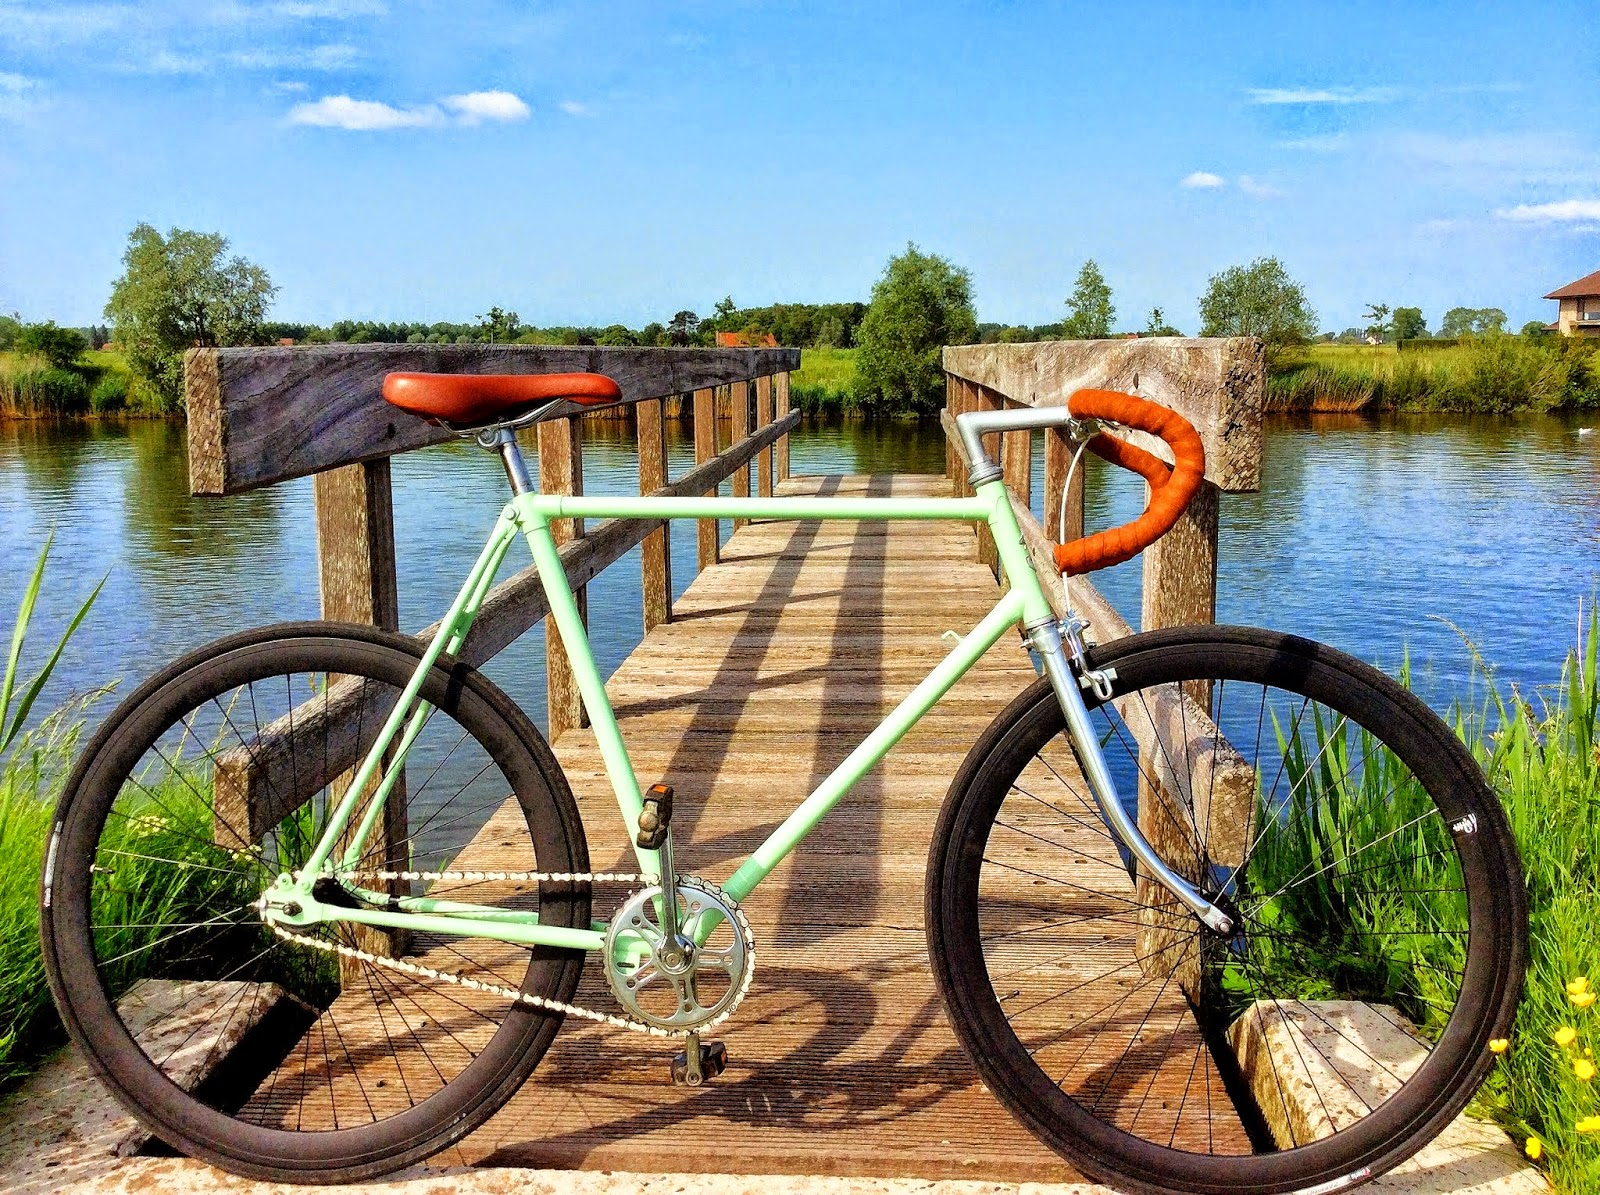 Phoenix recycled fixed gear bike by Ewout Vande Keere from Belgium